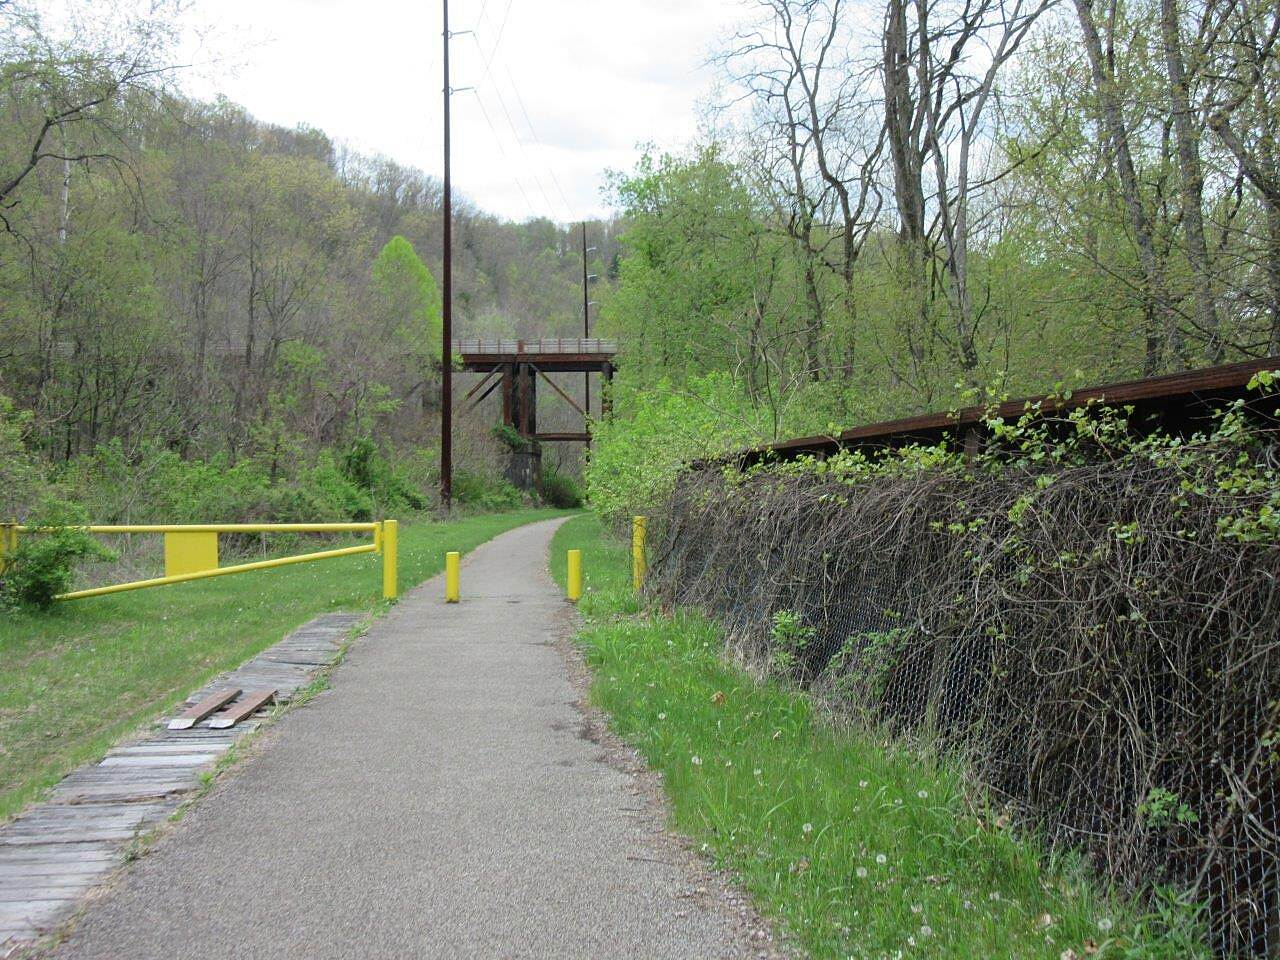 Allegheny River Trail Old Rail Trestle Crossing Sandy Creek an old trestle along the Allegheny River Trail.  You can see the Belmar Bridge up above.